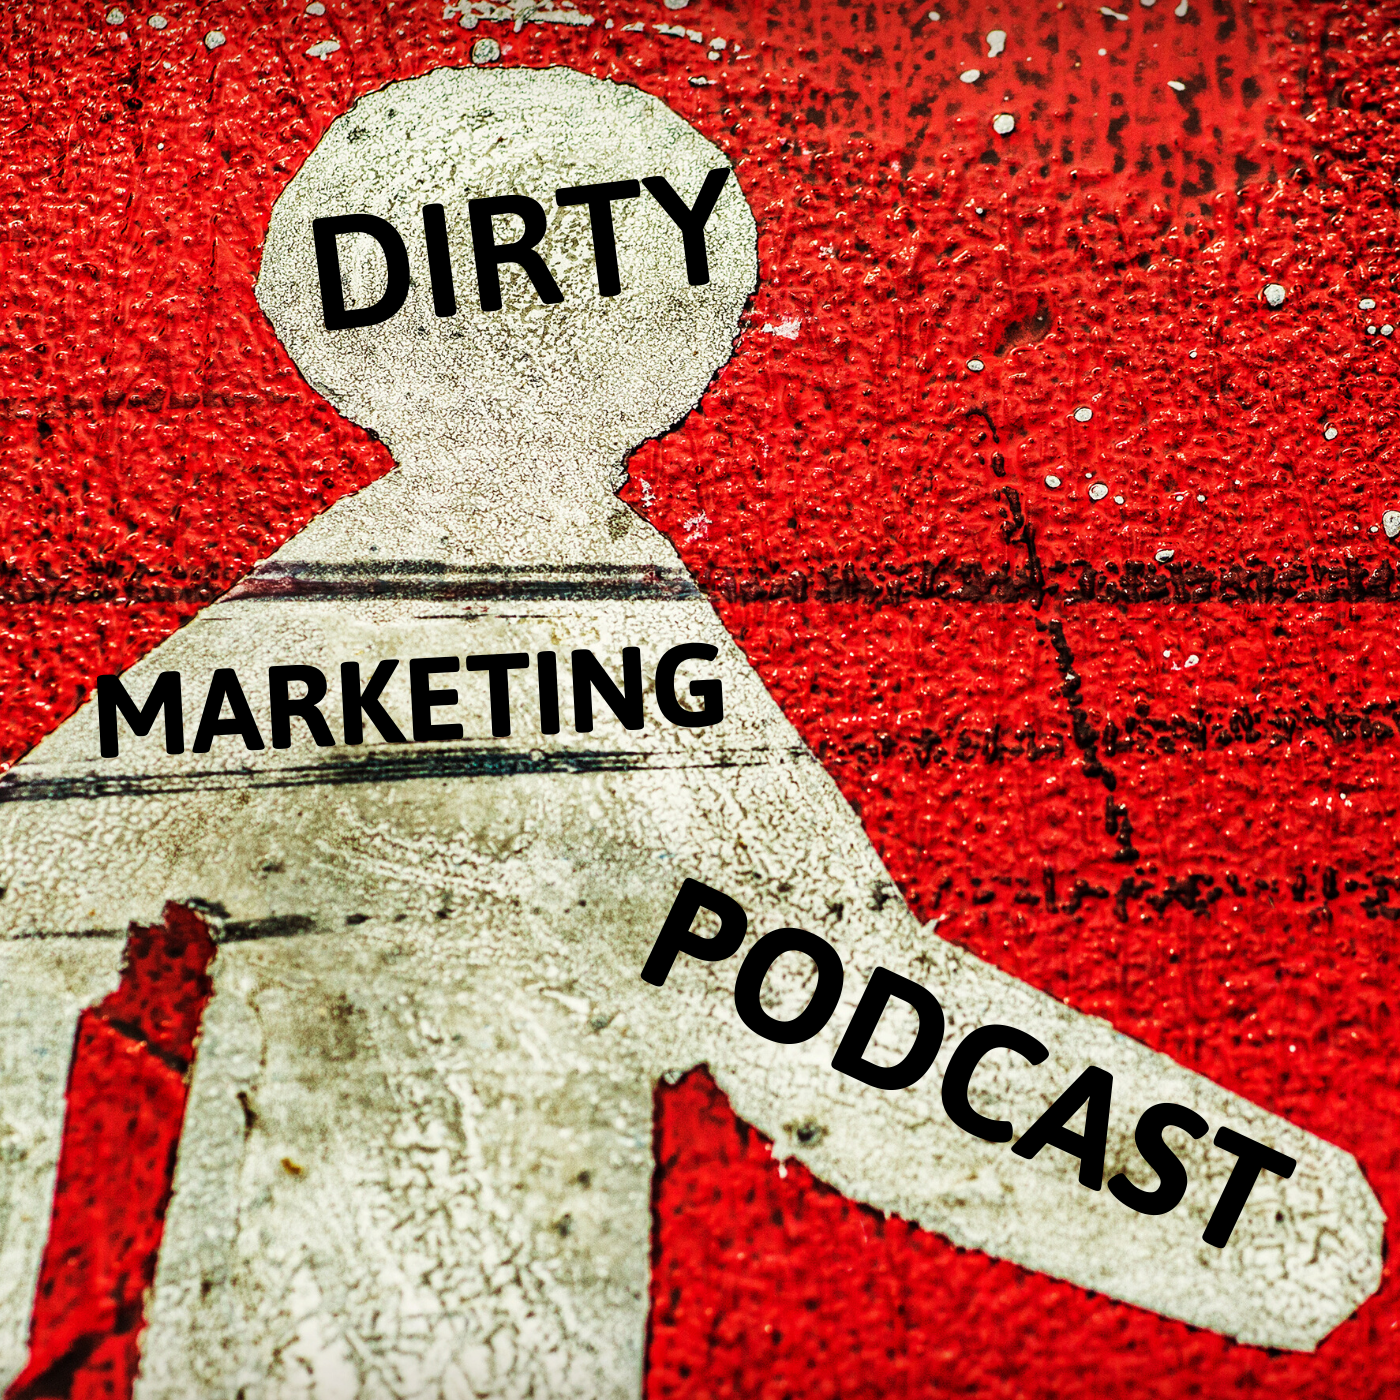 The Dirty Marketing Podcast show art